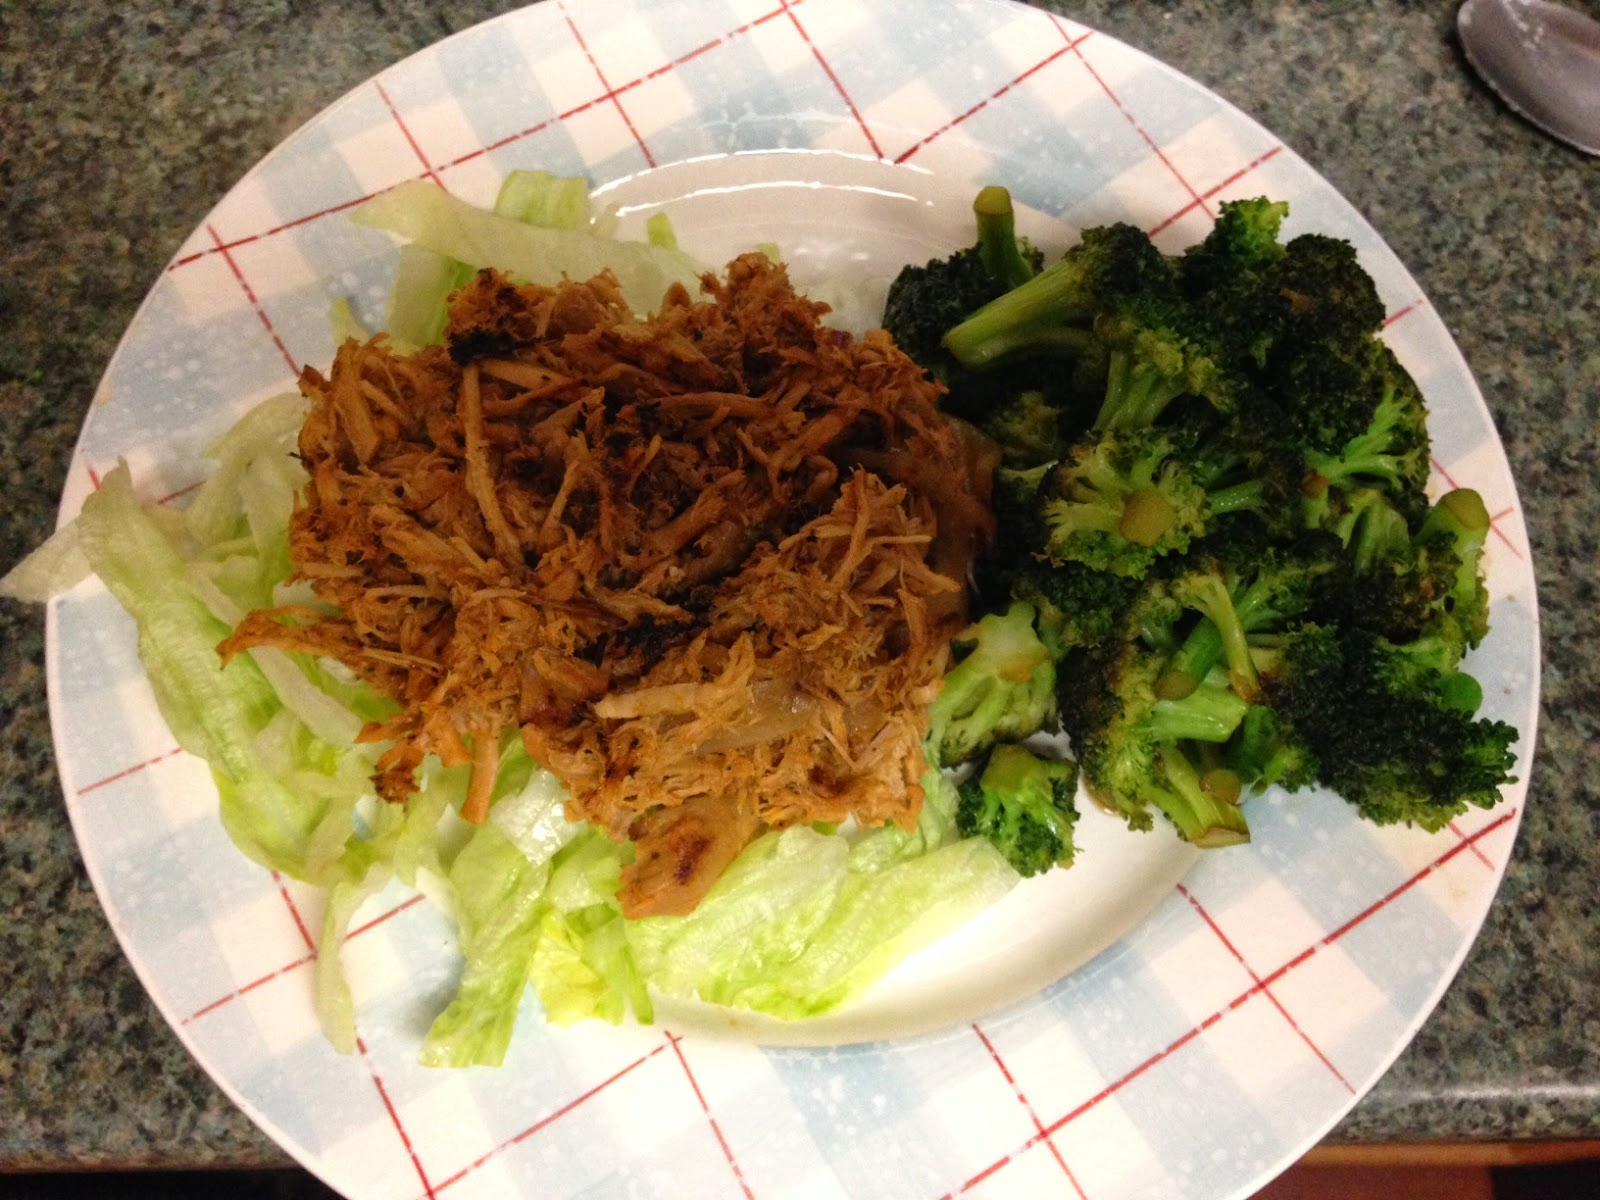 http://whole360.blogspot.com/p/paleo-pulled-pork.html